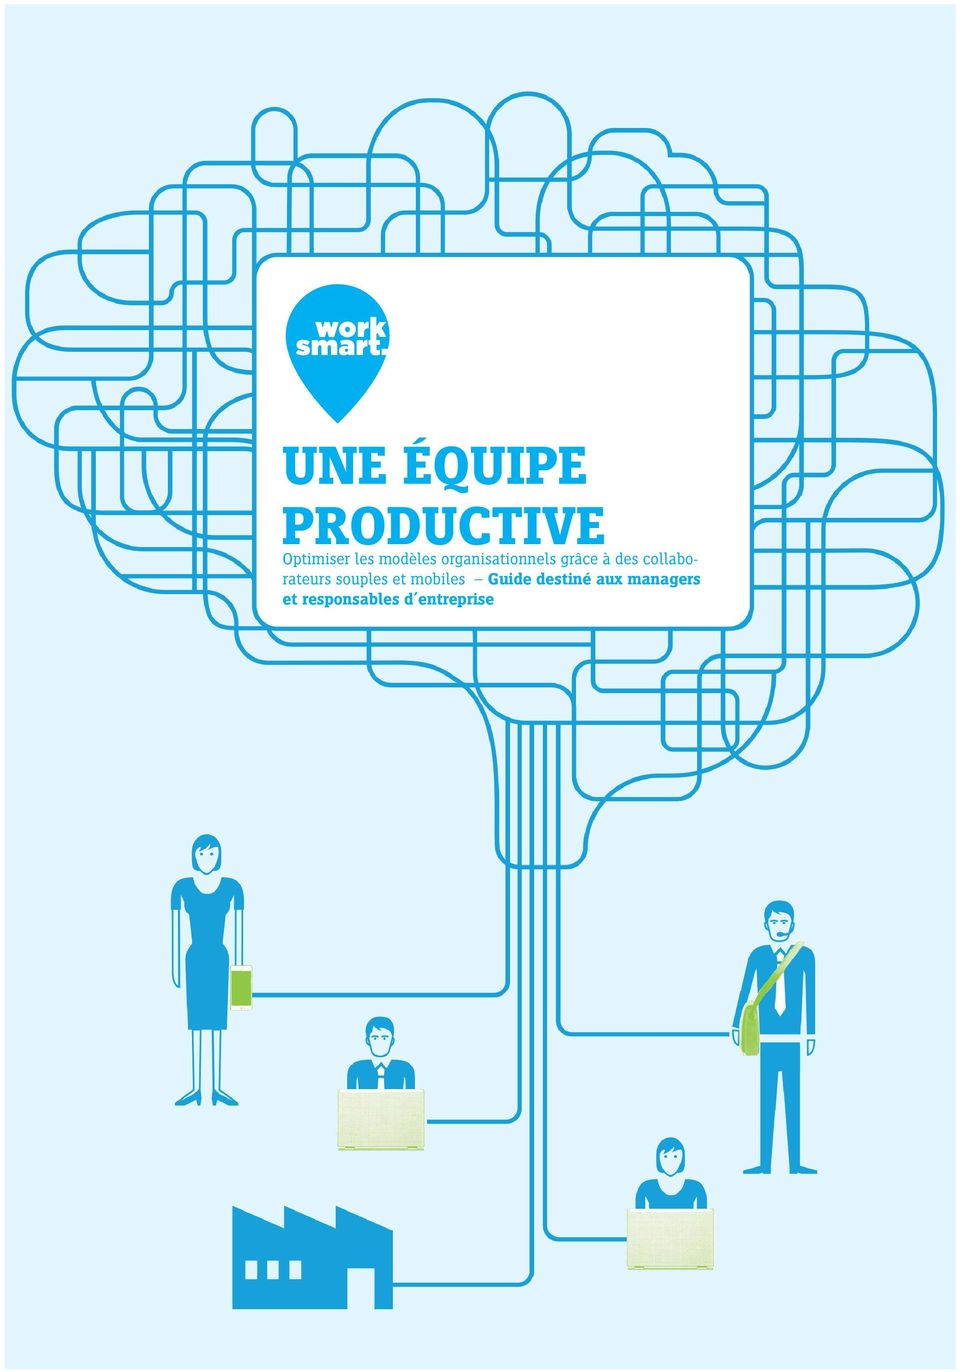 collaborateurs souples et mobiles Guide